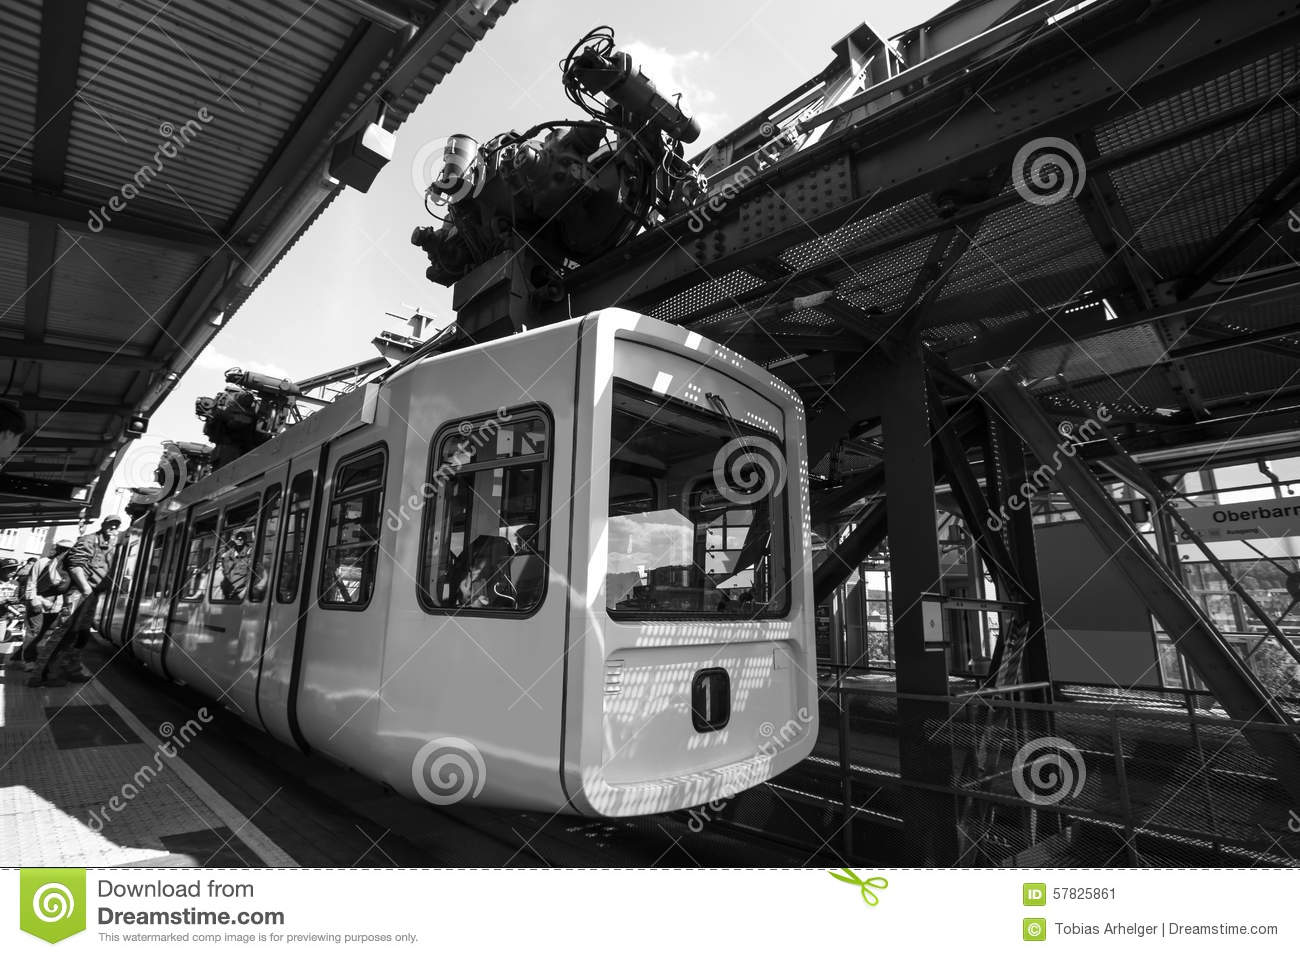 schwebebahn zug in wuppertal deutschland schwarzweiss stockbild bild von auto lastwagen 57825861. Black Bedroom Furniture Sets. Home Design Ideas